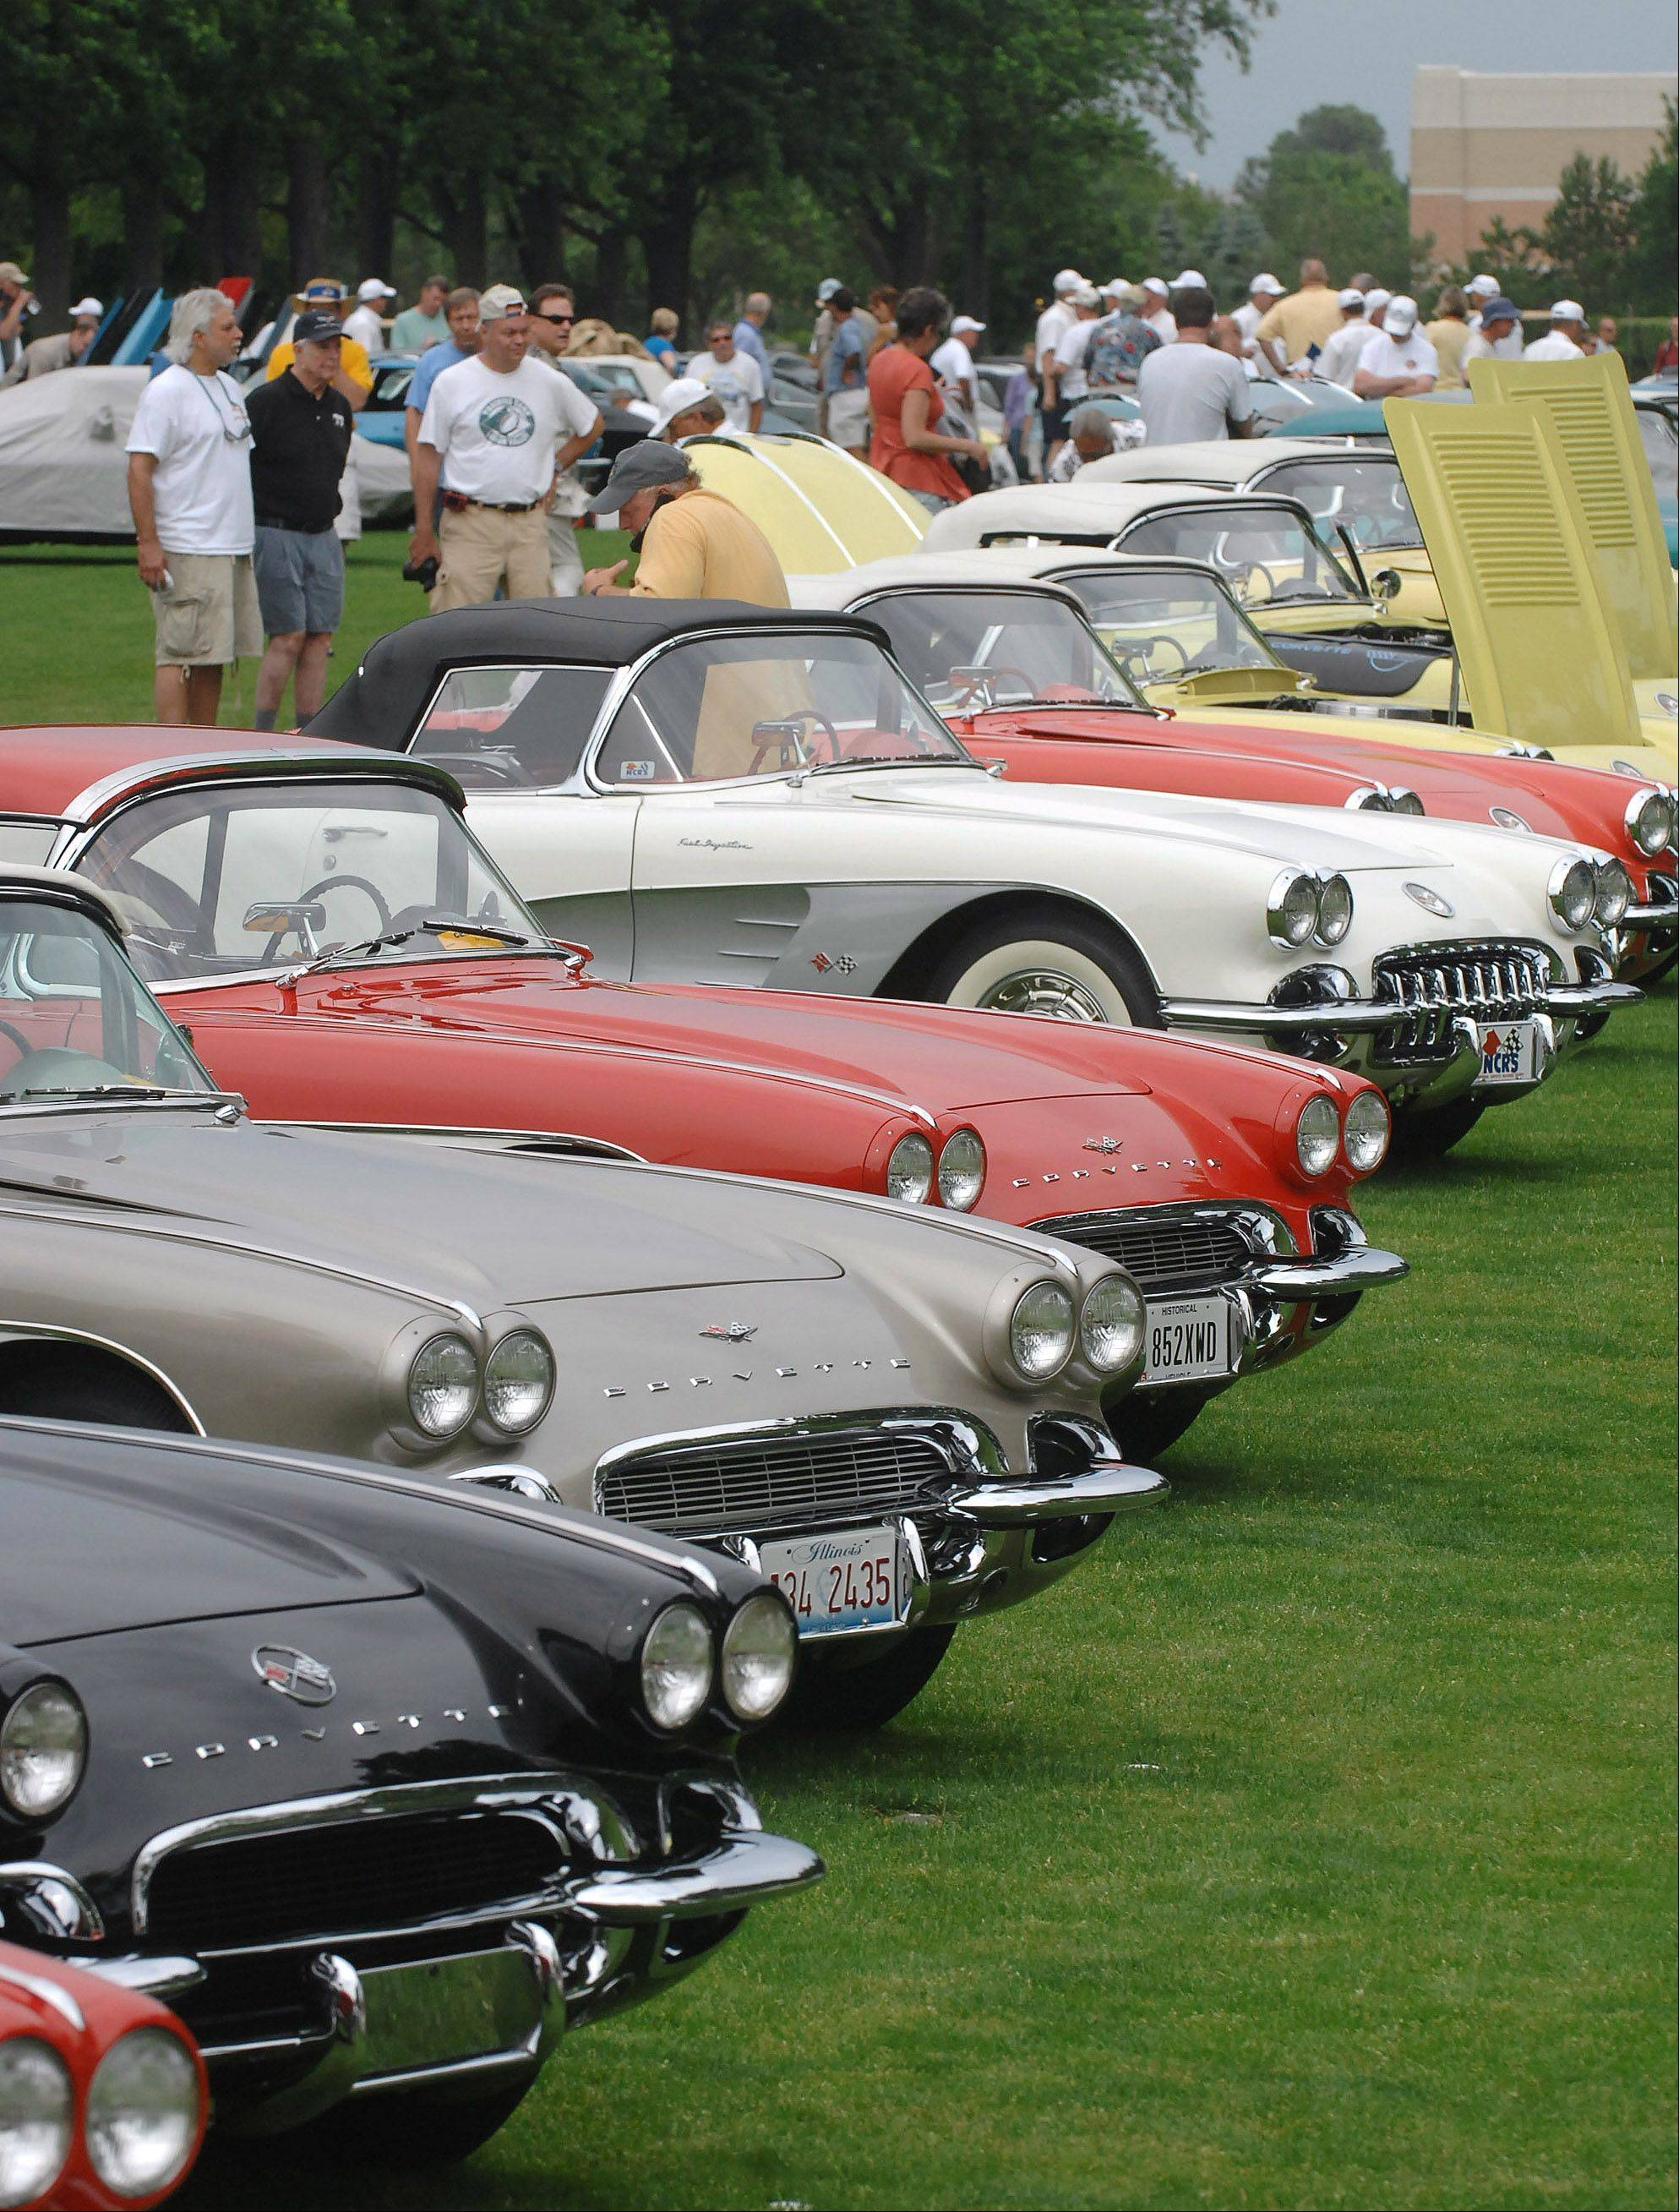 Corvettes from the 1950s sit on the certification field for judging at a previous edition of Bloomington Gold at Pheasant Run Resort in St. Charles.